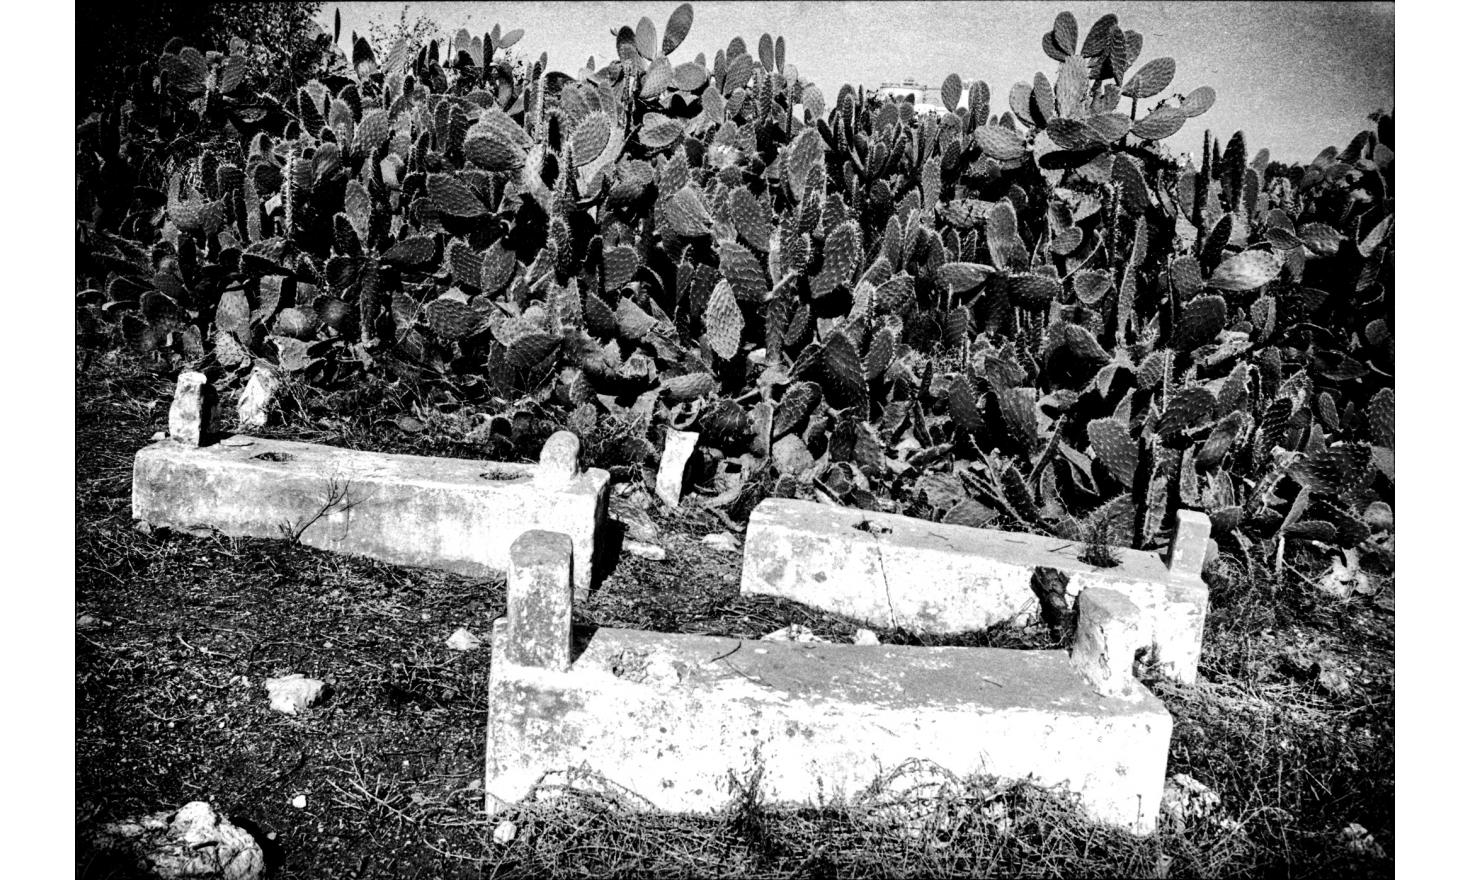 """Cemetery of the Arab village of """"Blad ash Sheikh."""" The village was destroyed during the war of independence in 1948. Near Haifa, Israel. November 2004."""